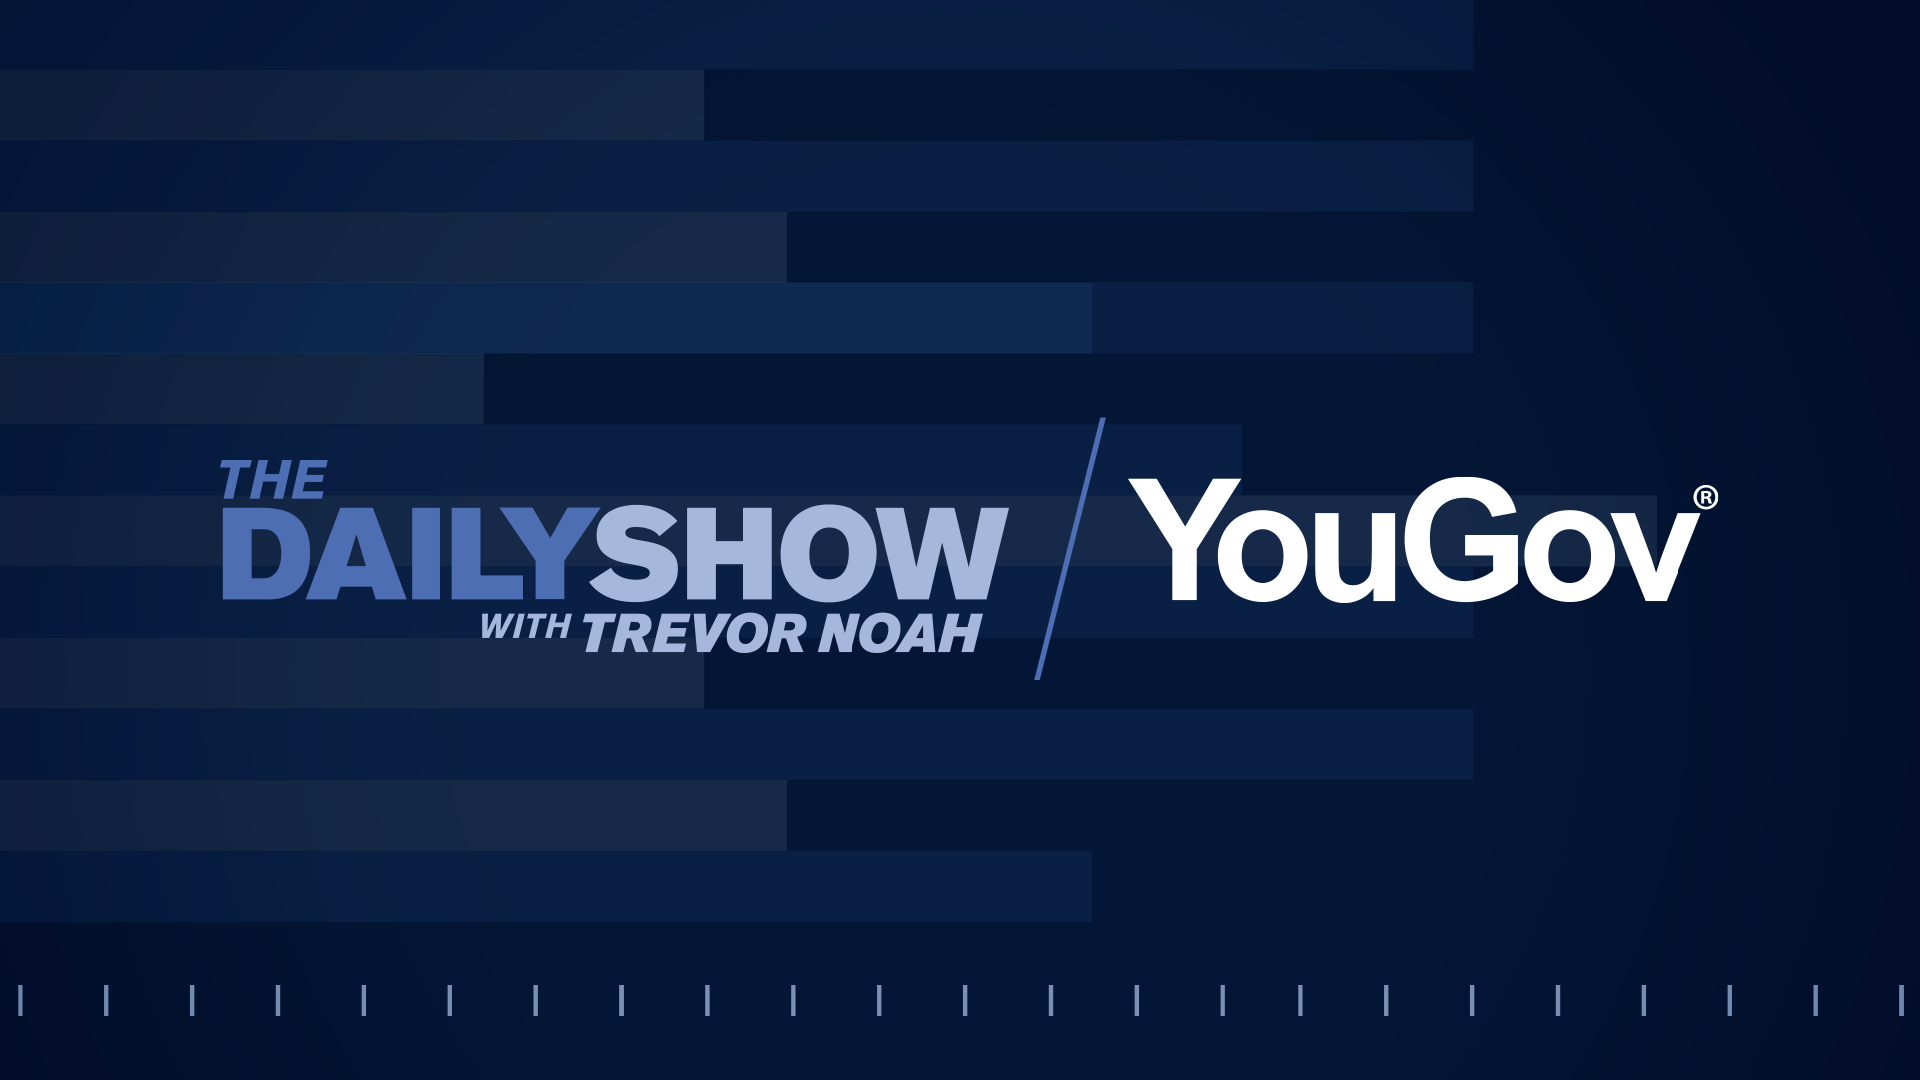 The Daily Show and Yougov logo 01